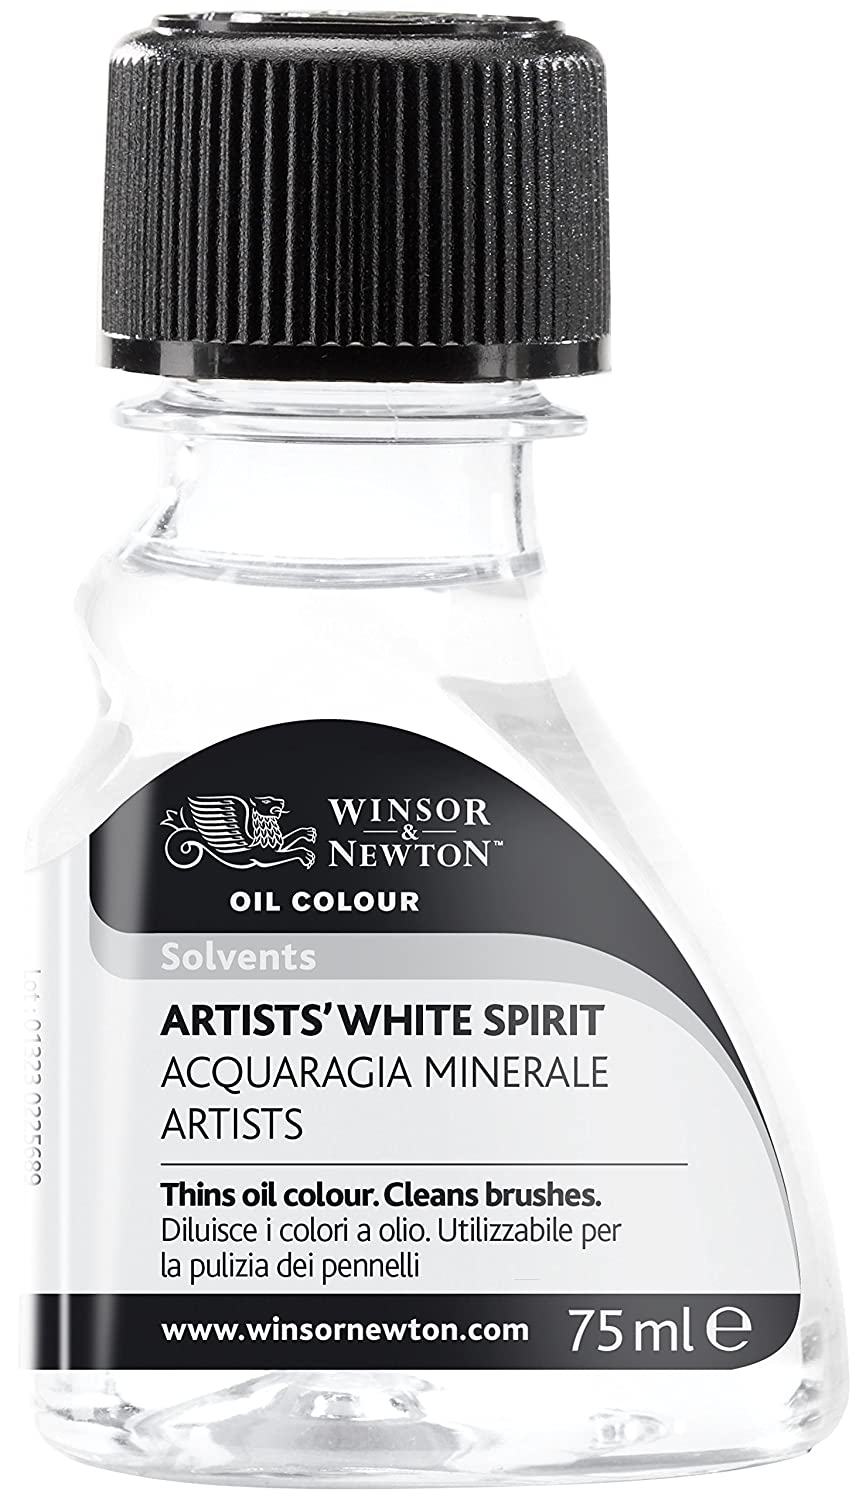 Winsor & Newton Artists' White Spirits, 75ml 酒店工程系统技术与应用